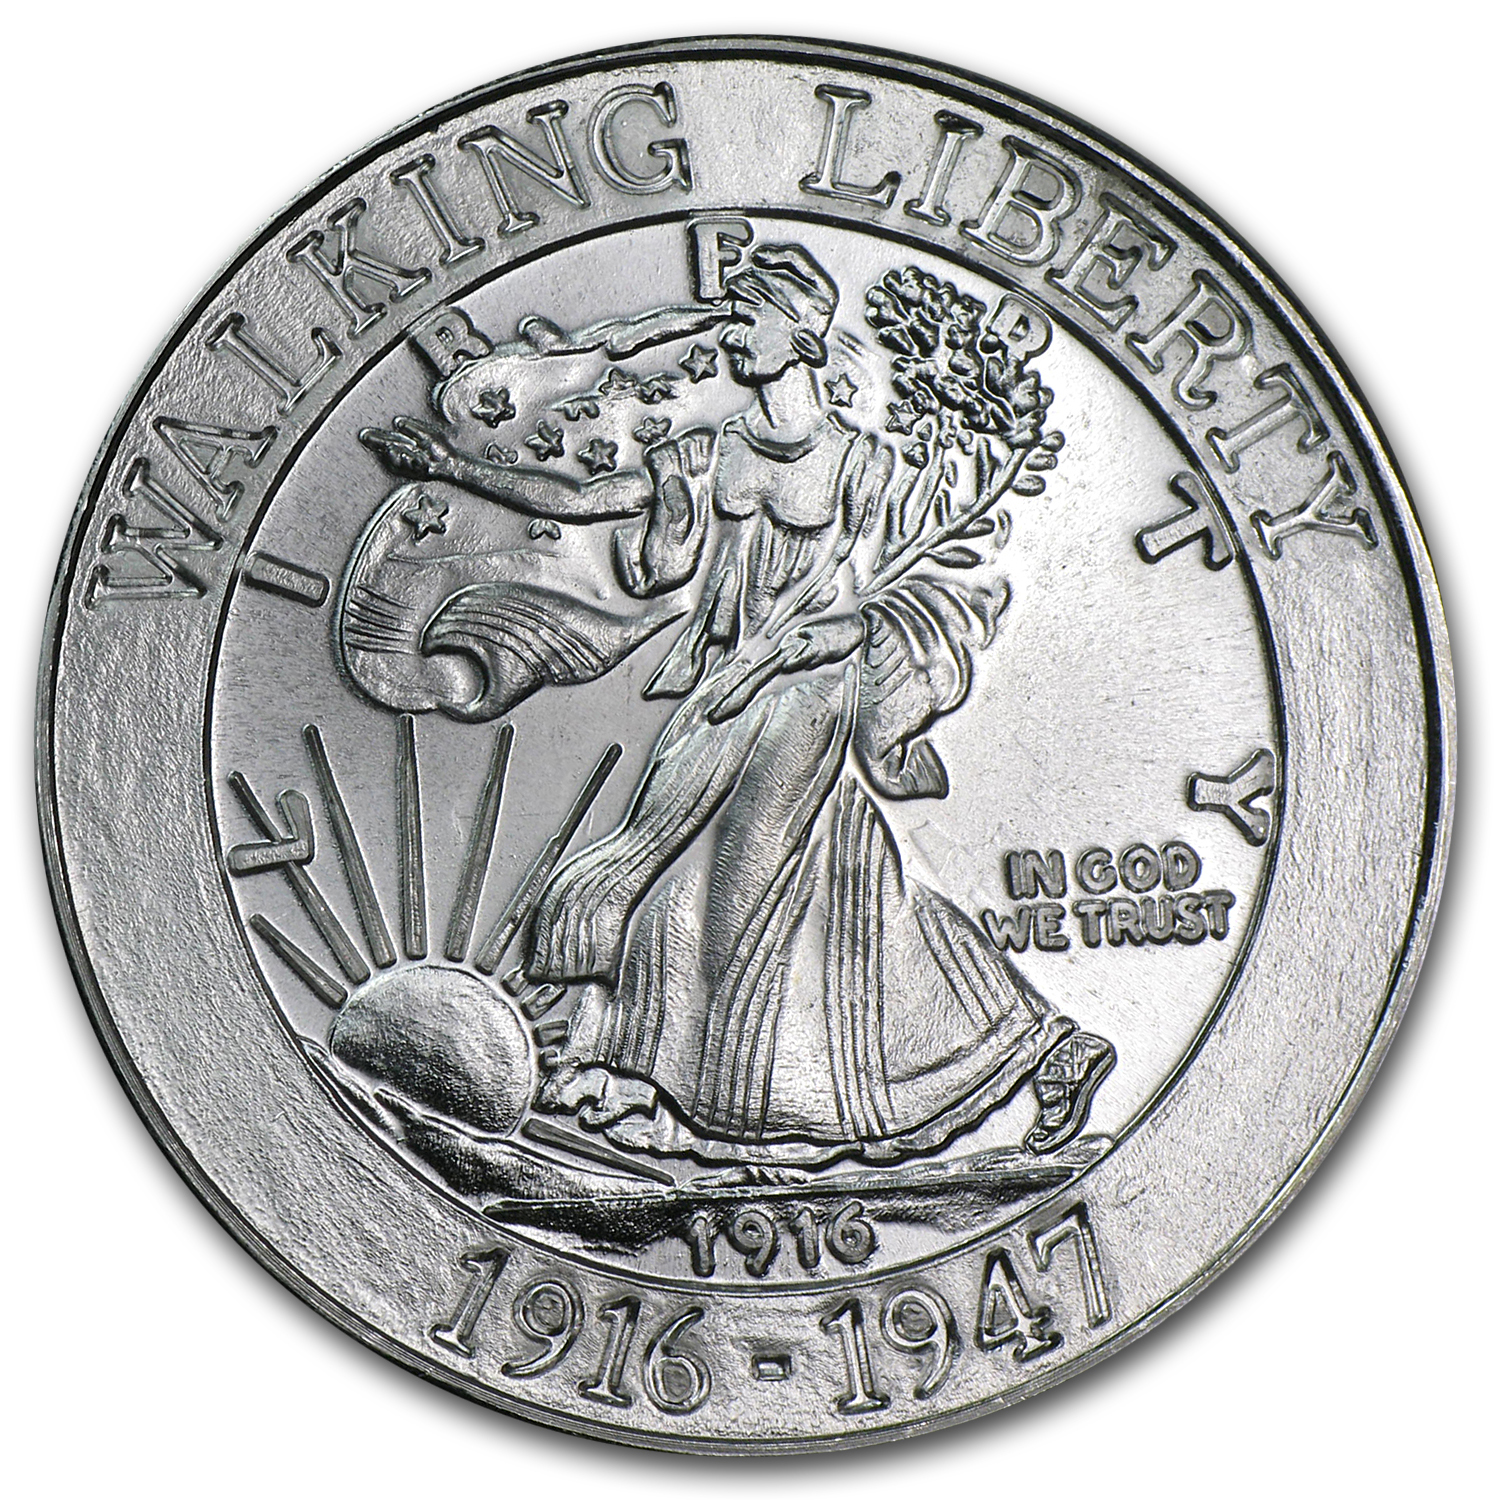 1 oz Silver Rounds - Walking Liberty